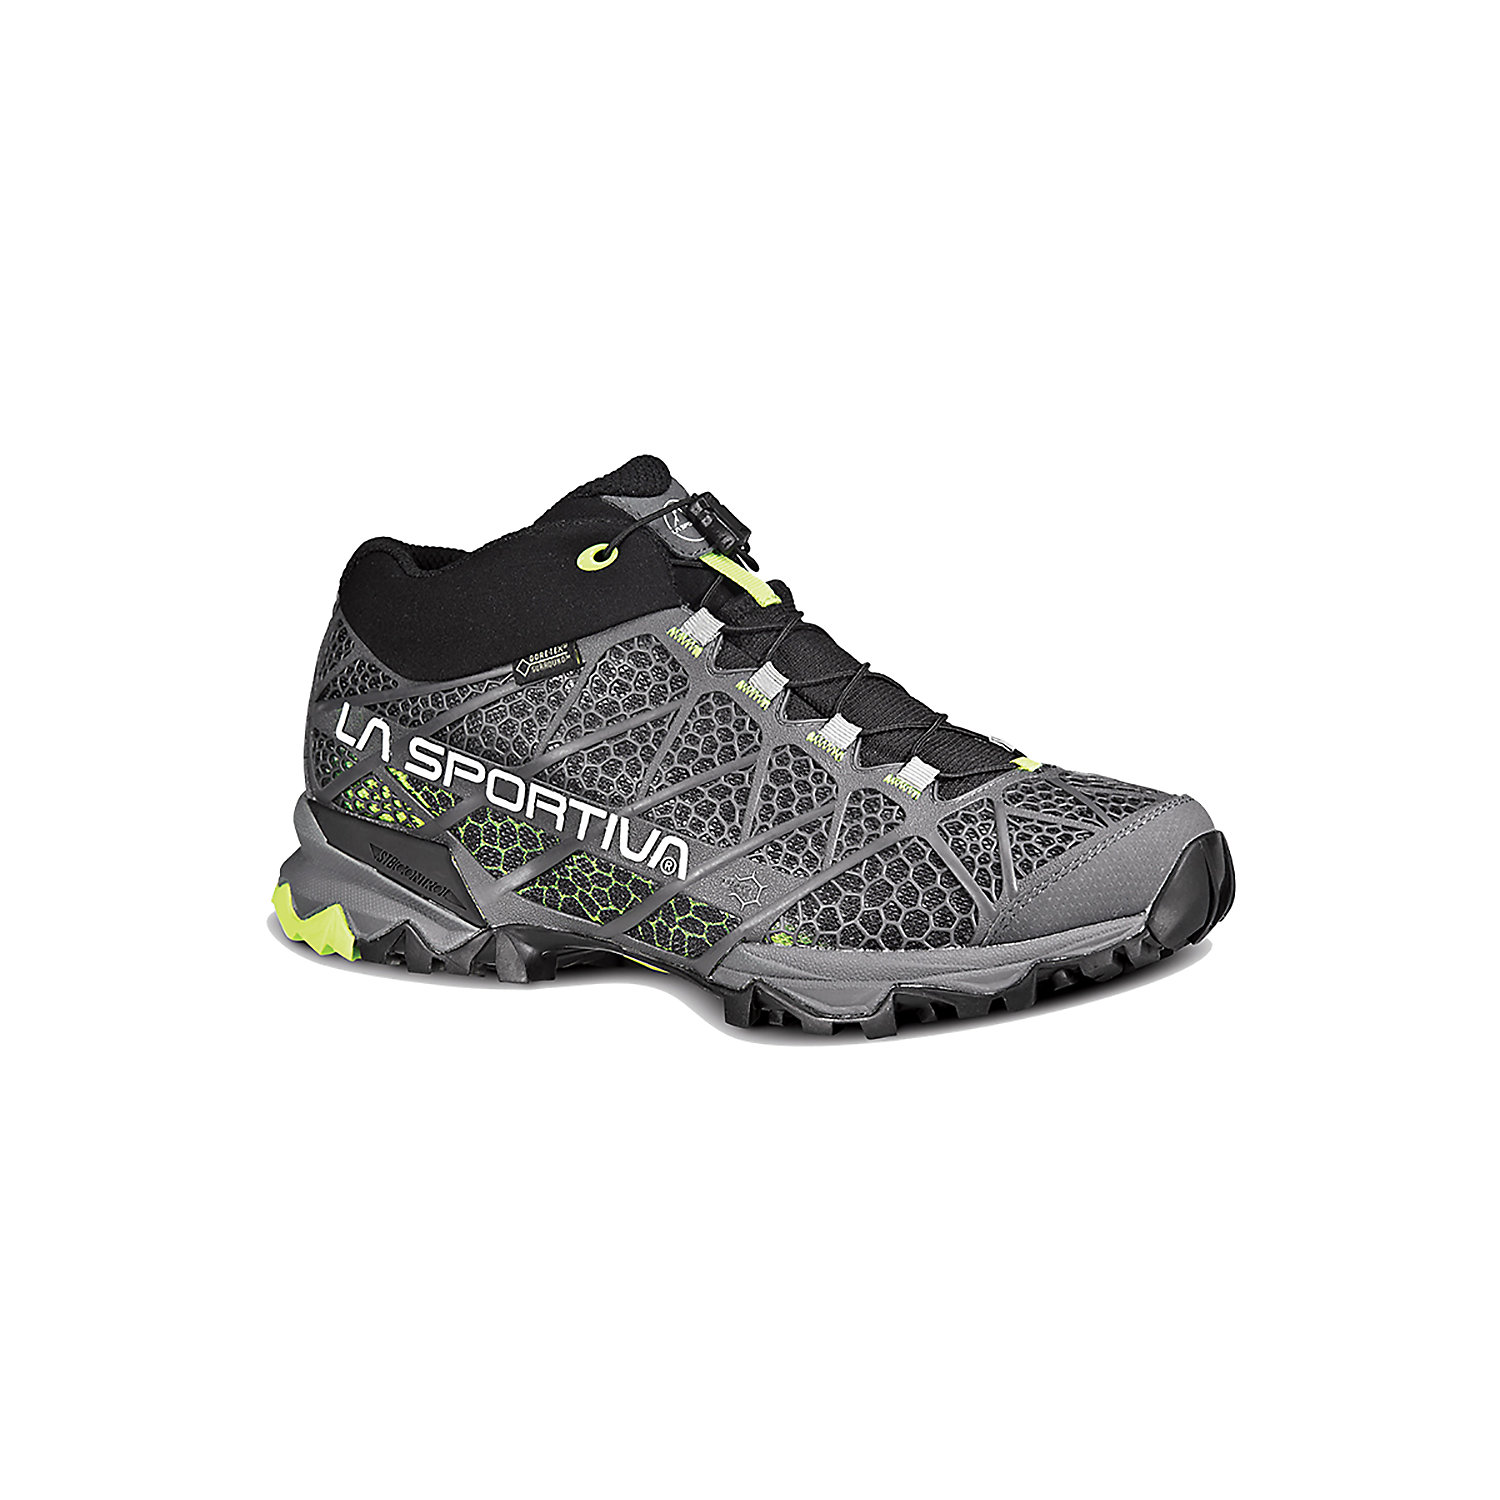 d7ebc9bf236 La Sportiva Men's Synthesis Mid GTX Boot